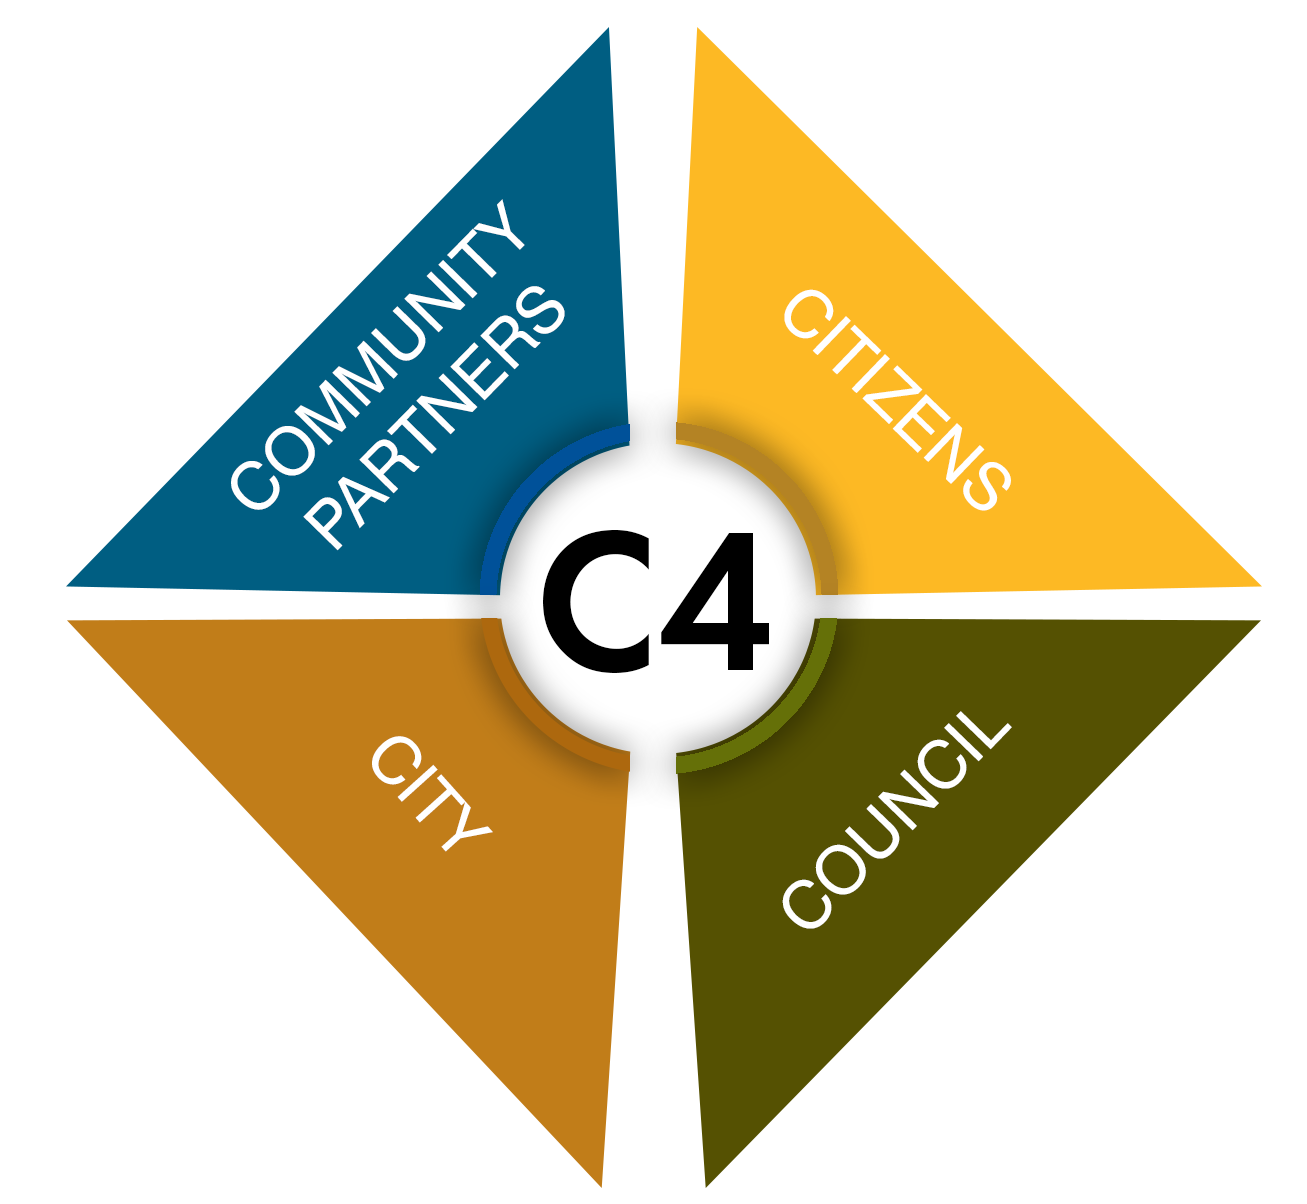 C4 logo displaying the four pieces including: Community Partners, Citizens, Council, and City